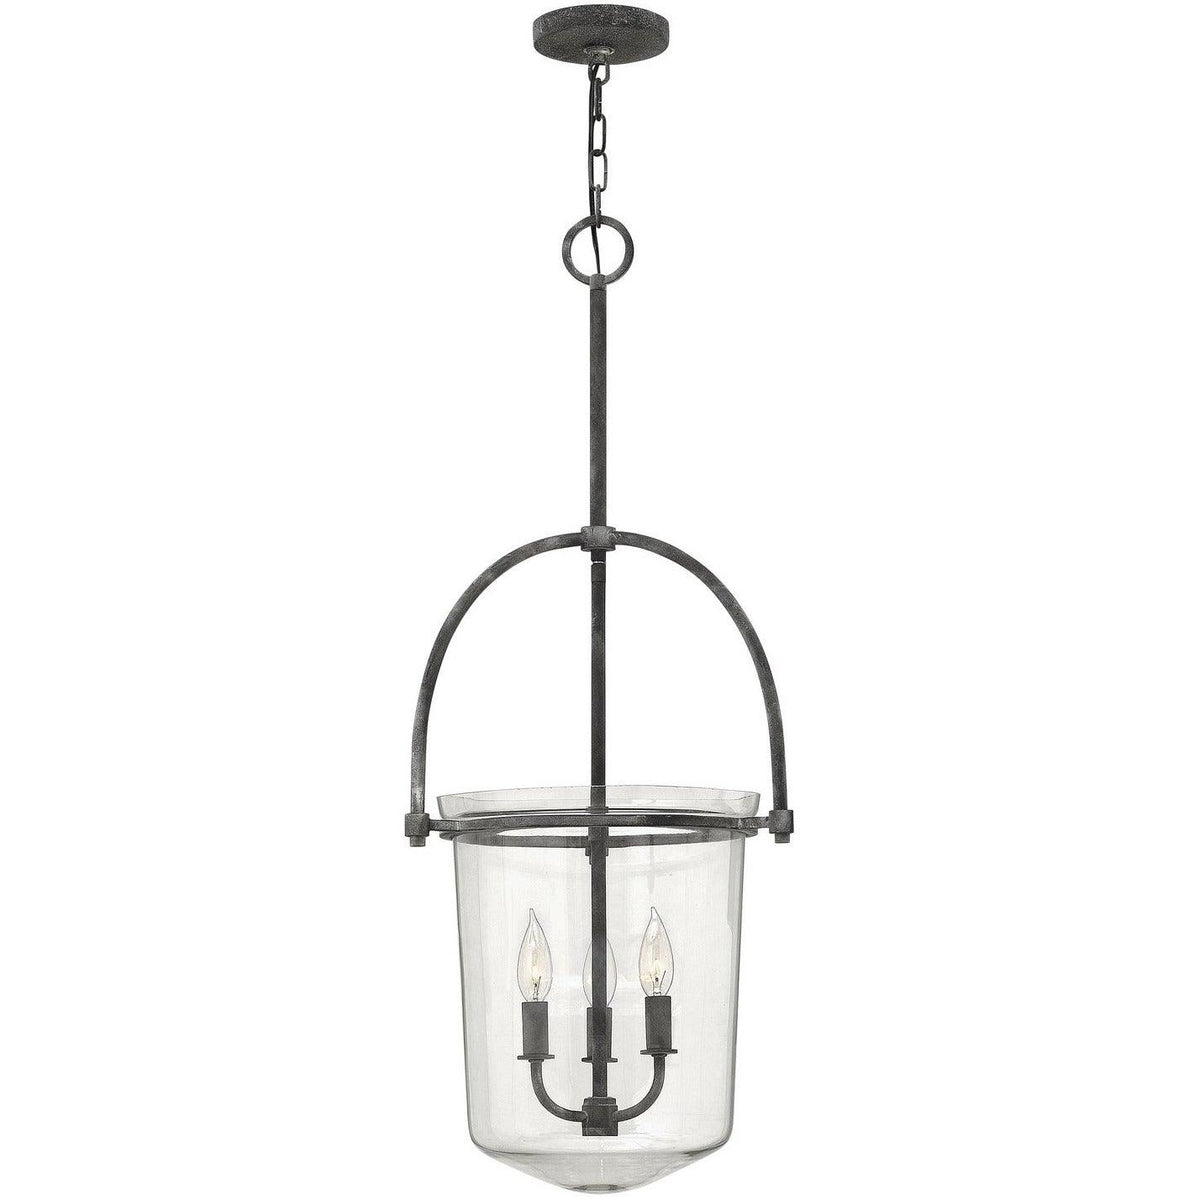 Hinkley Canada - 3033DZ - Three Light Foyer Pendant - Clancy - Aged Zinc